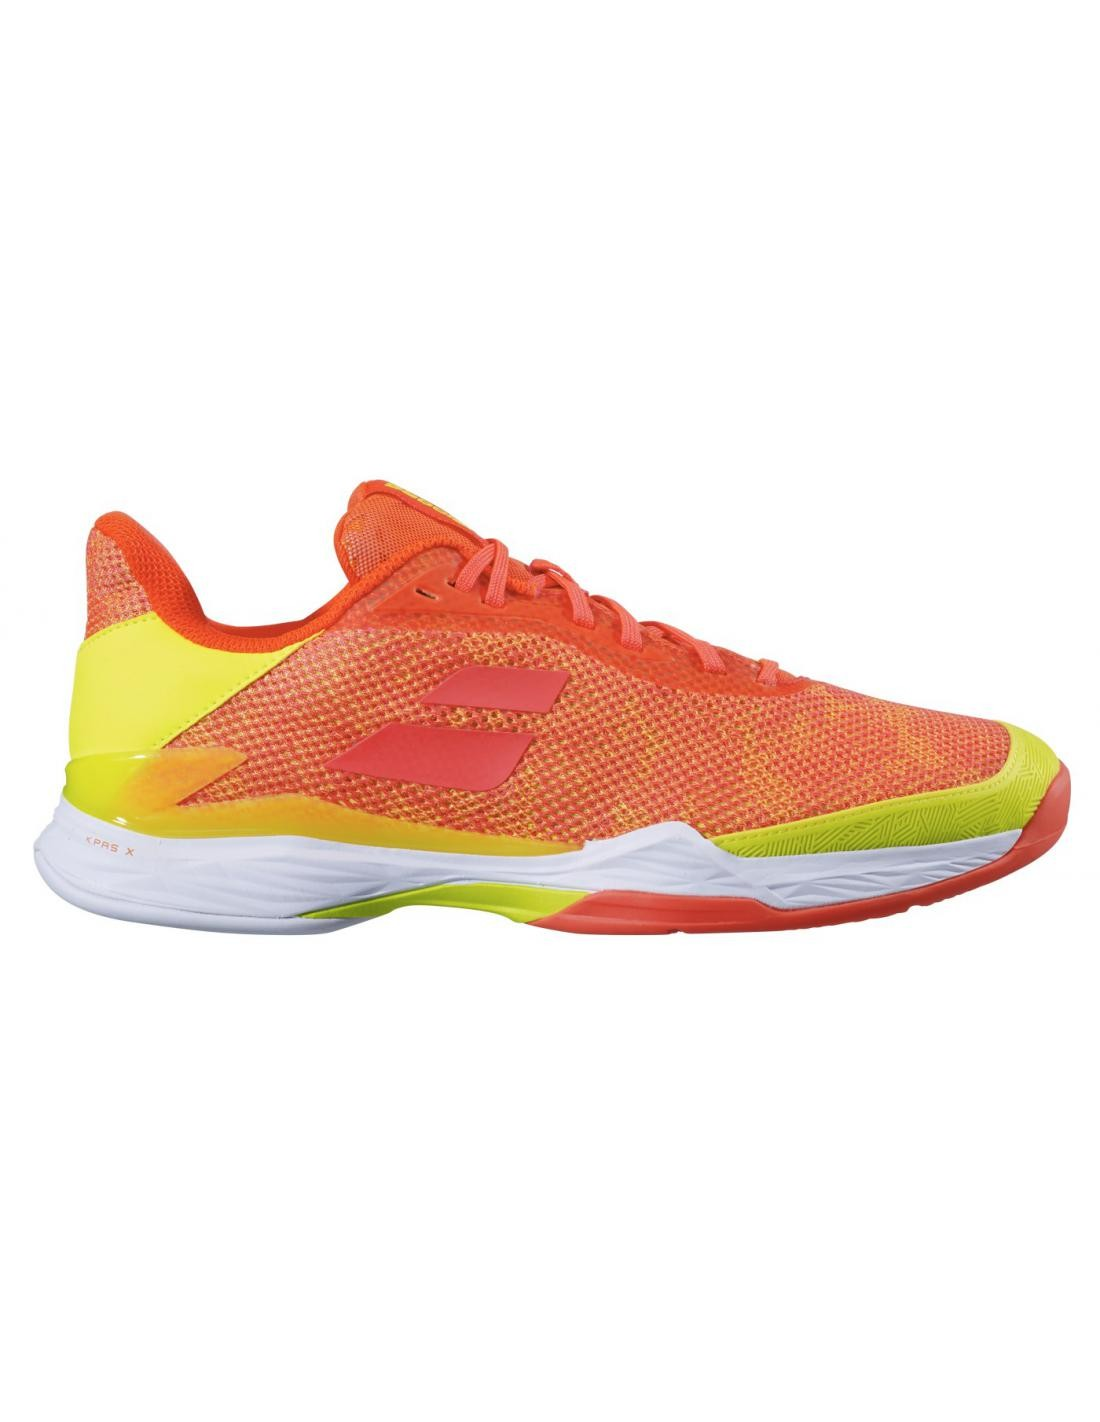 Buty tenisowe Babolat Tere Clay Fluo 2020